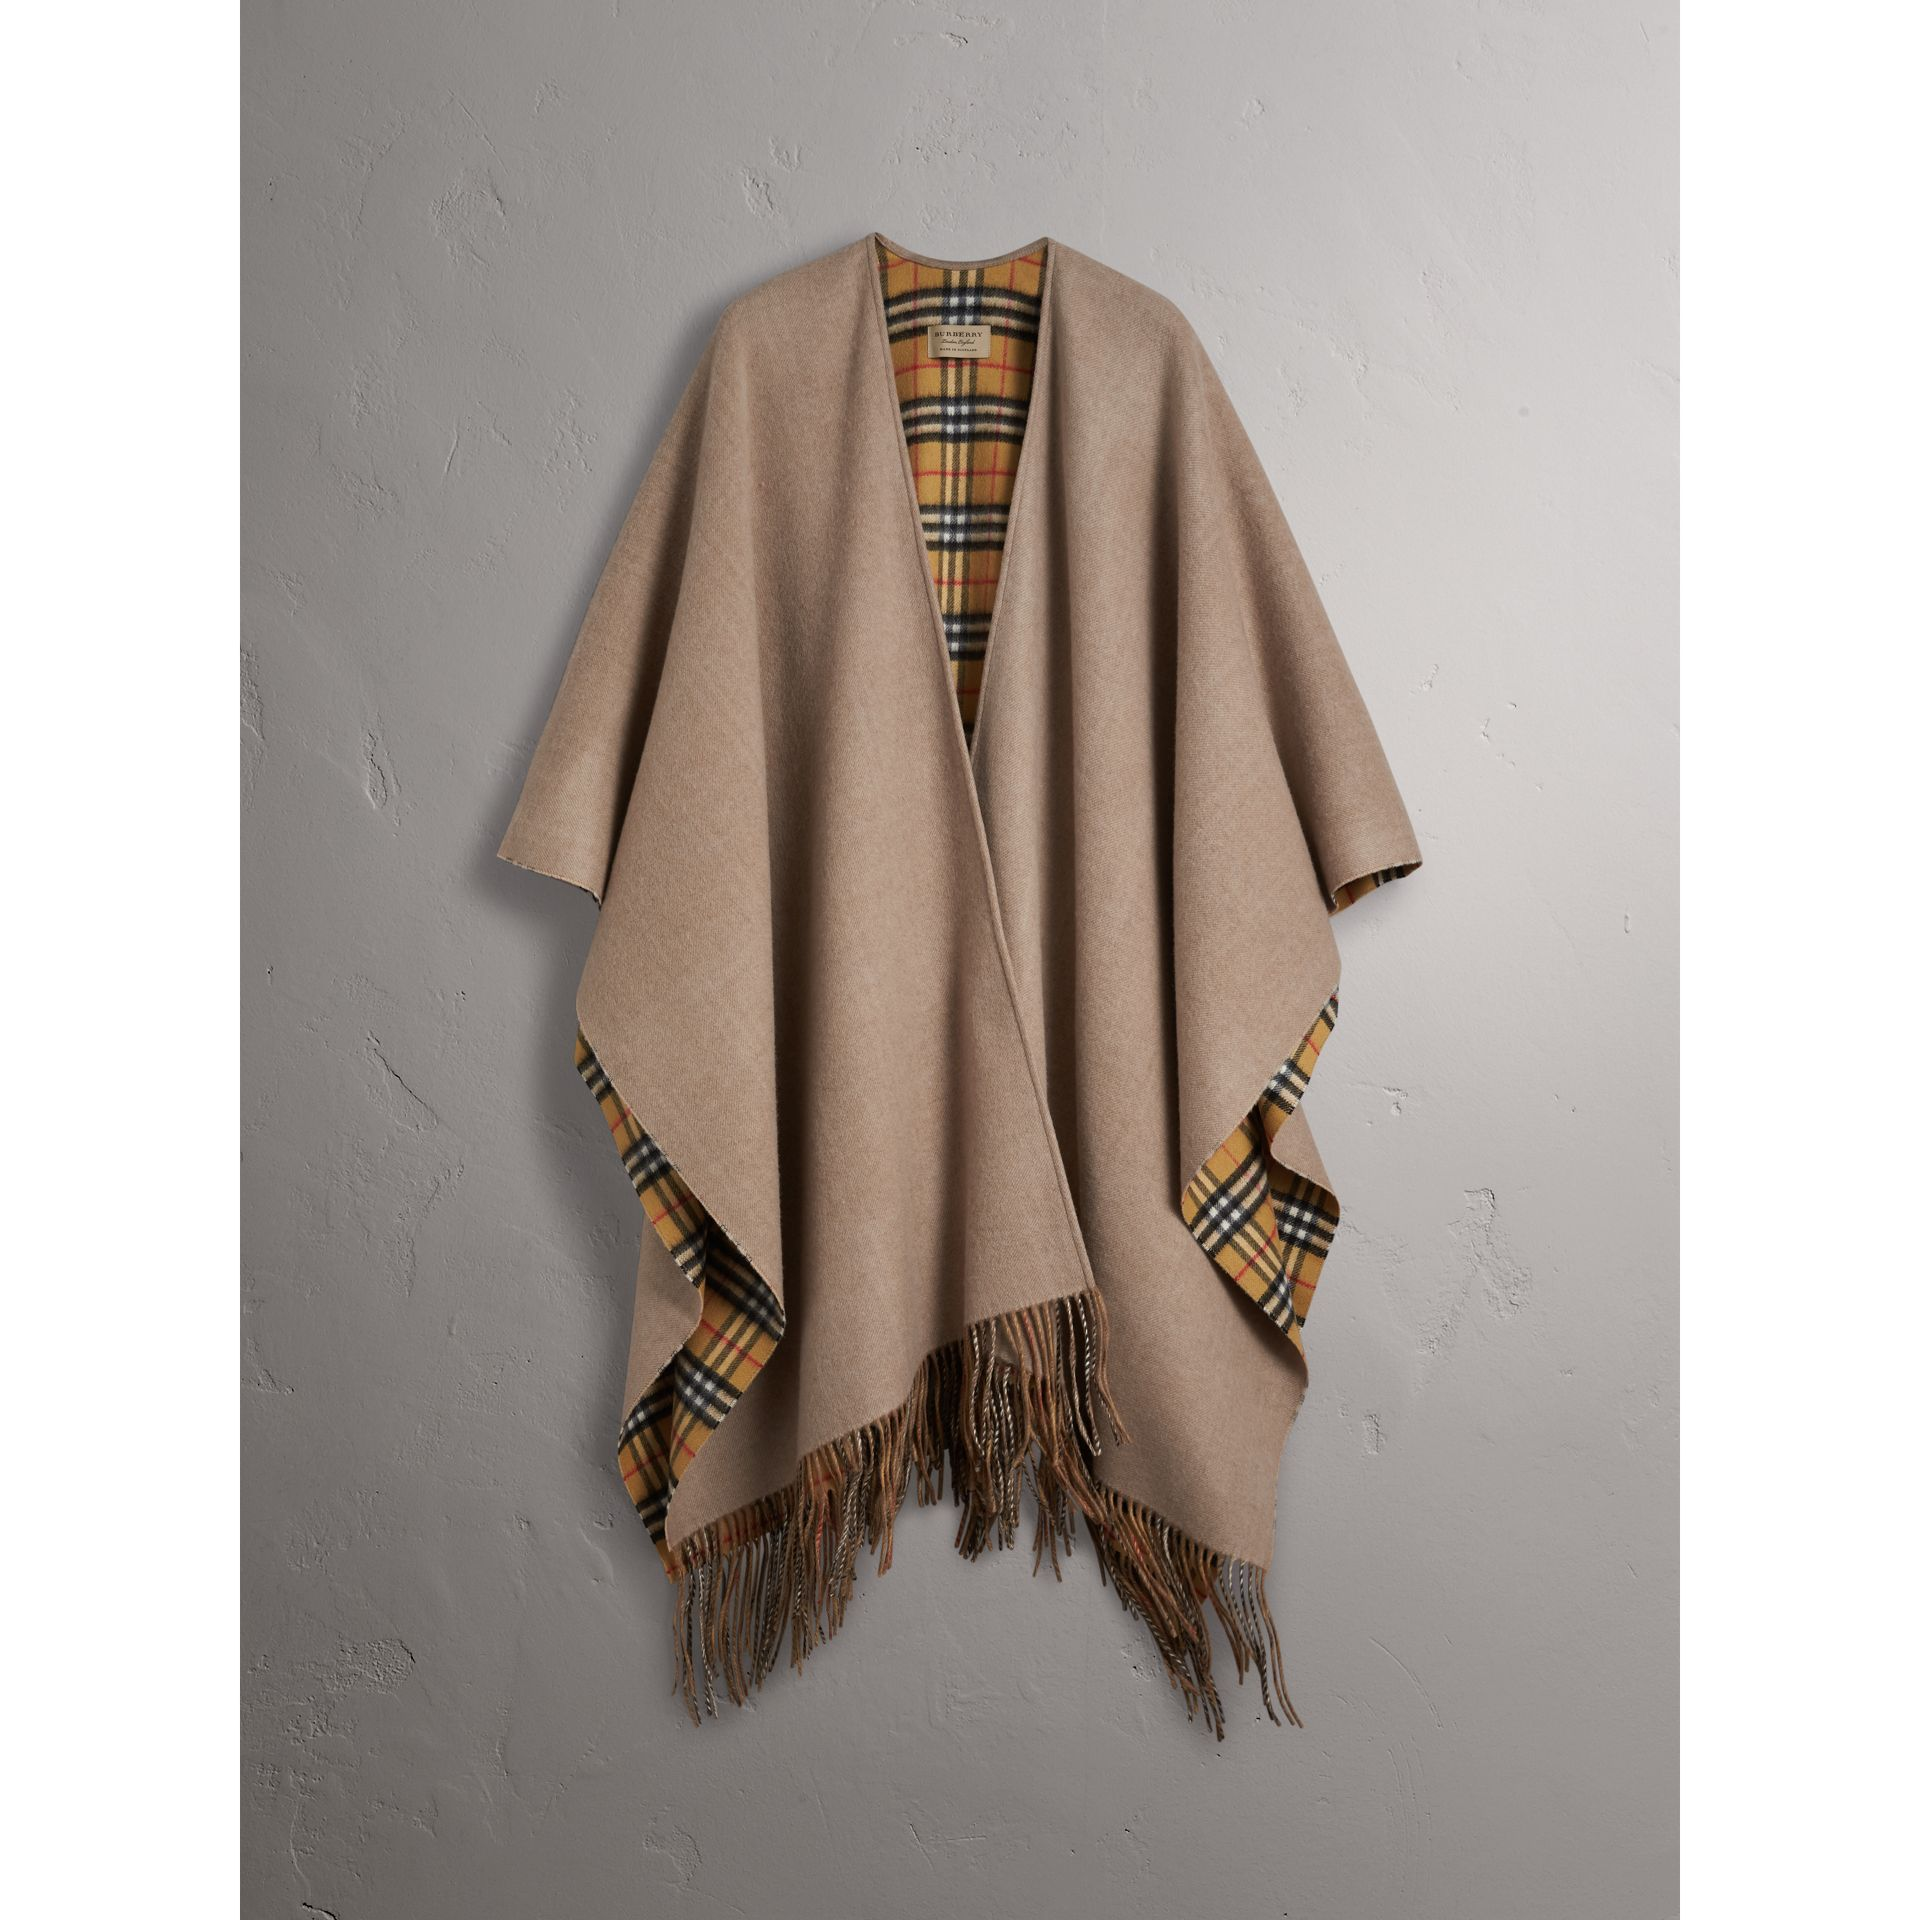 Reversible Vintage Check Cashmere Wool Poncho in Sandstone - Women | Burberry - gallery image 3